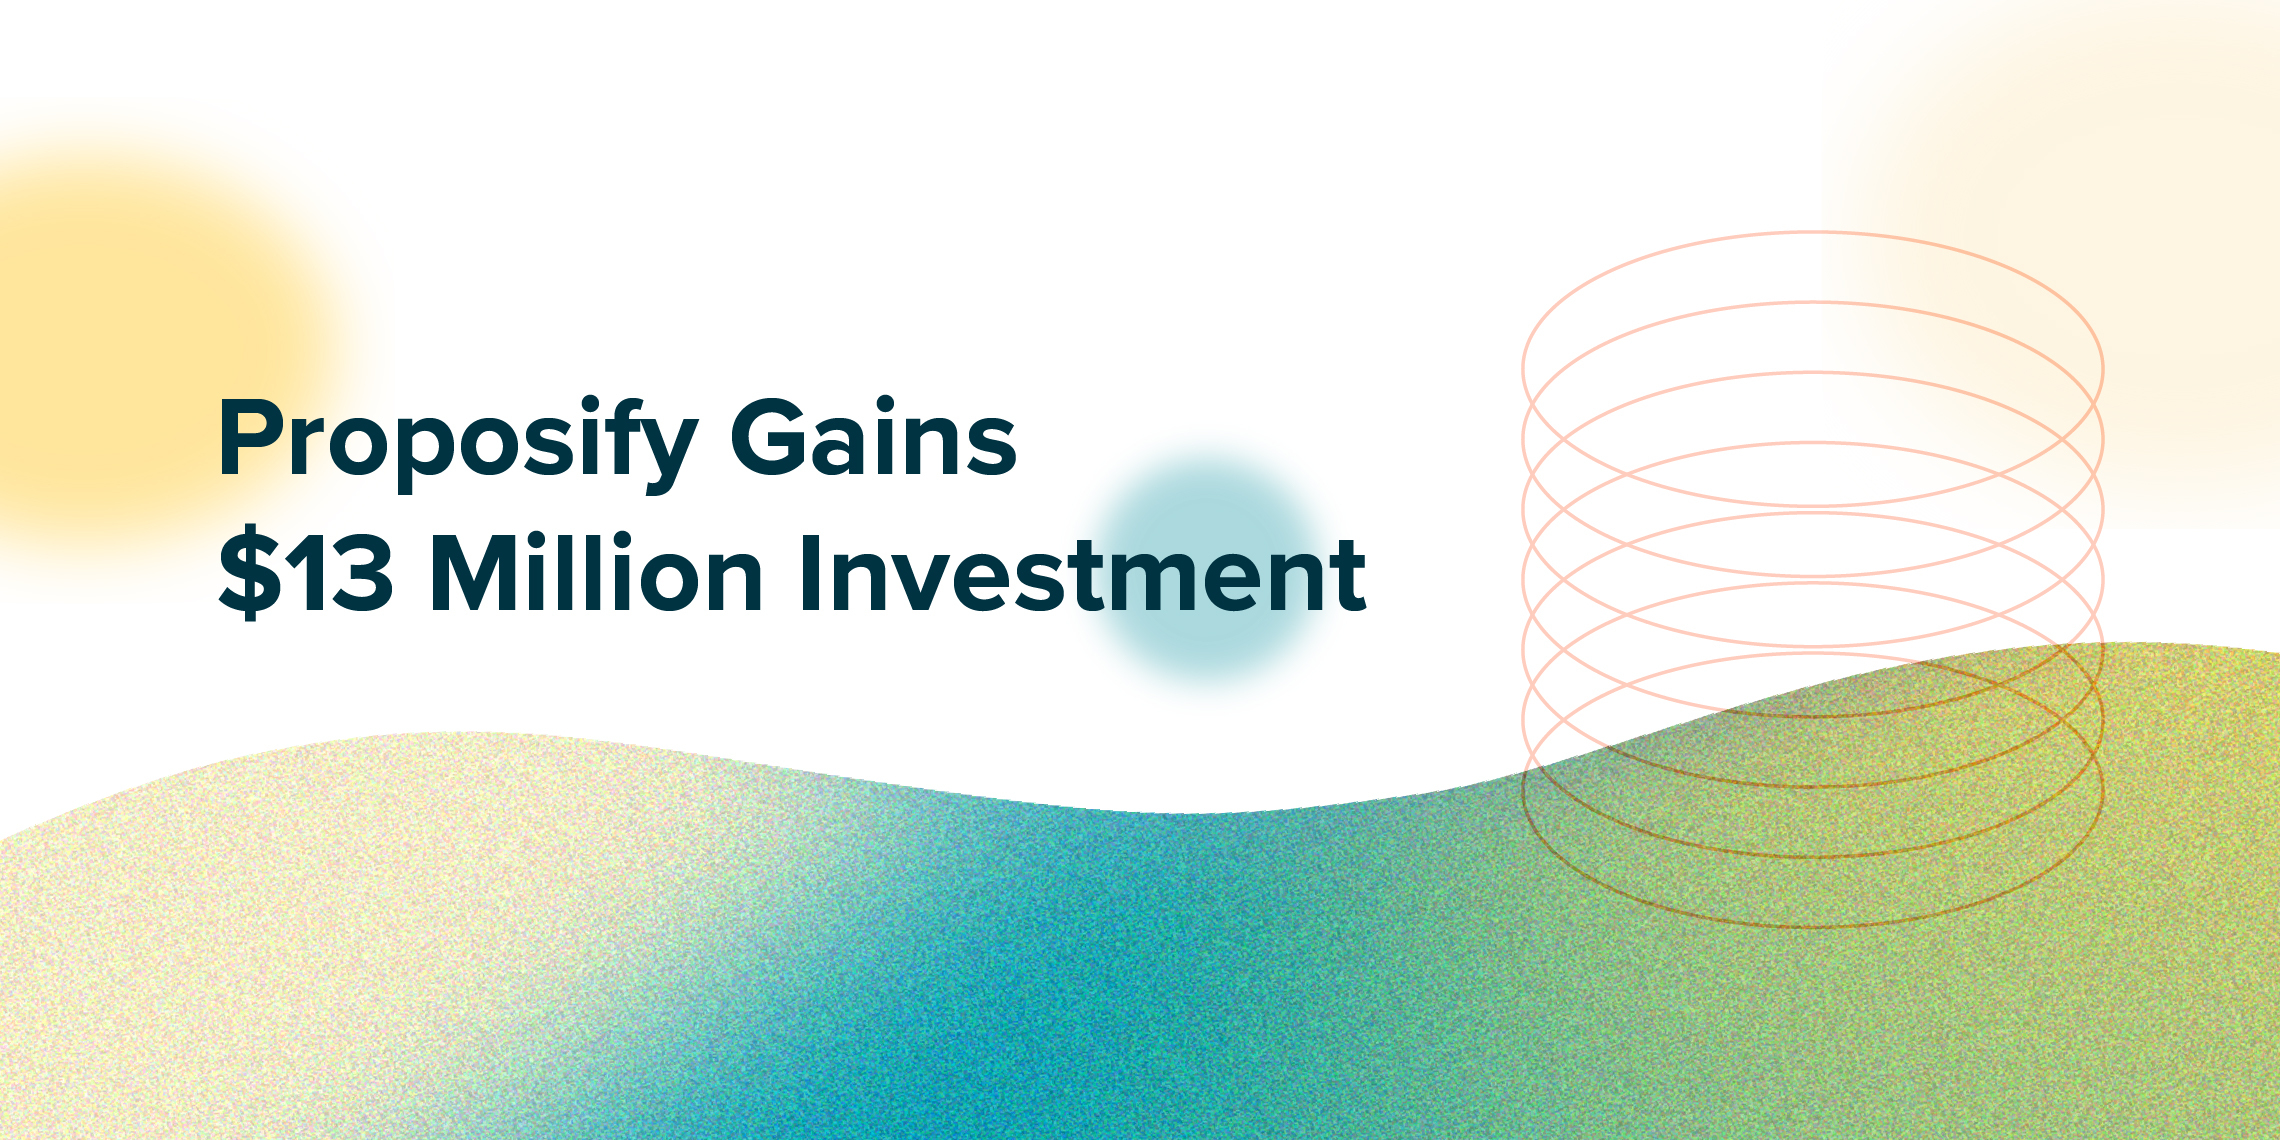 proposify gains $13 million investment